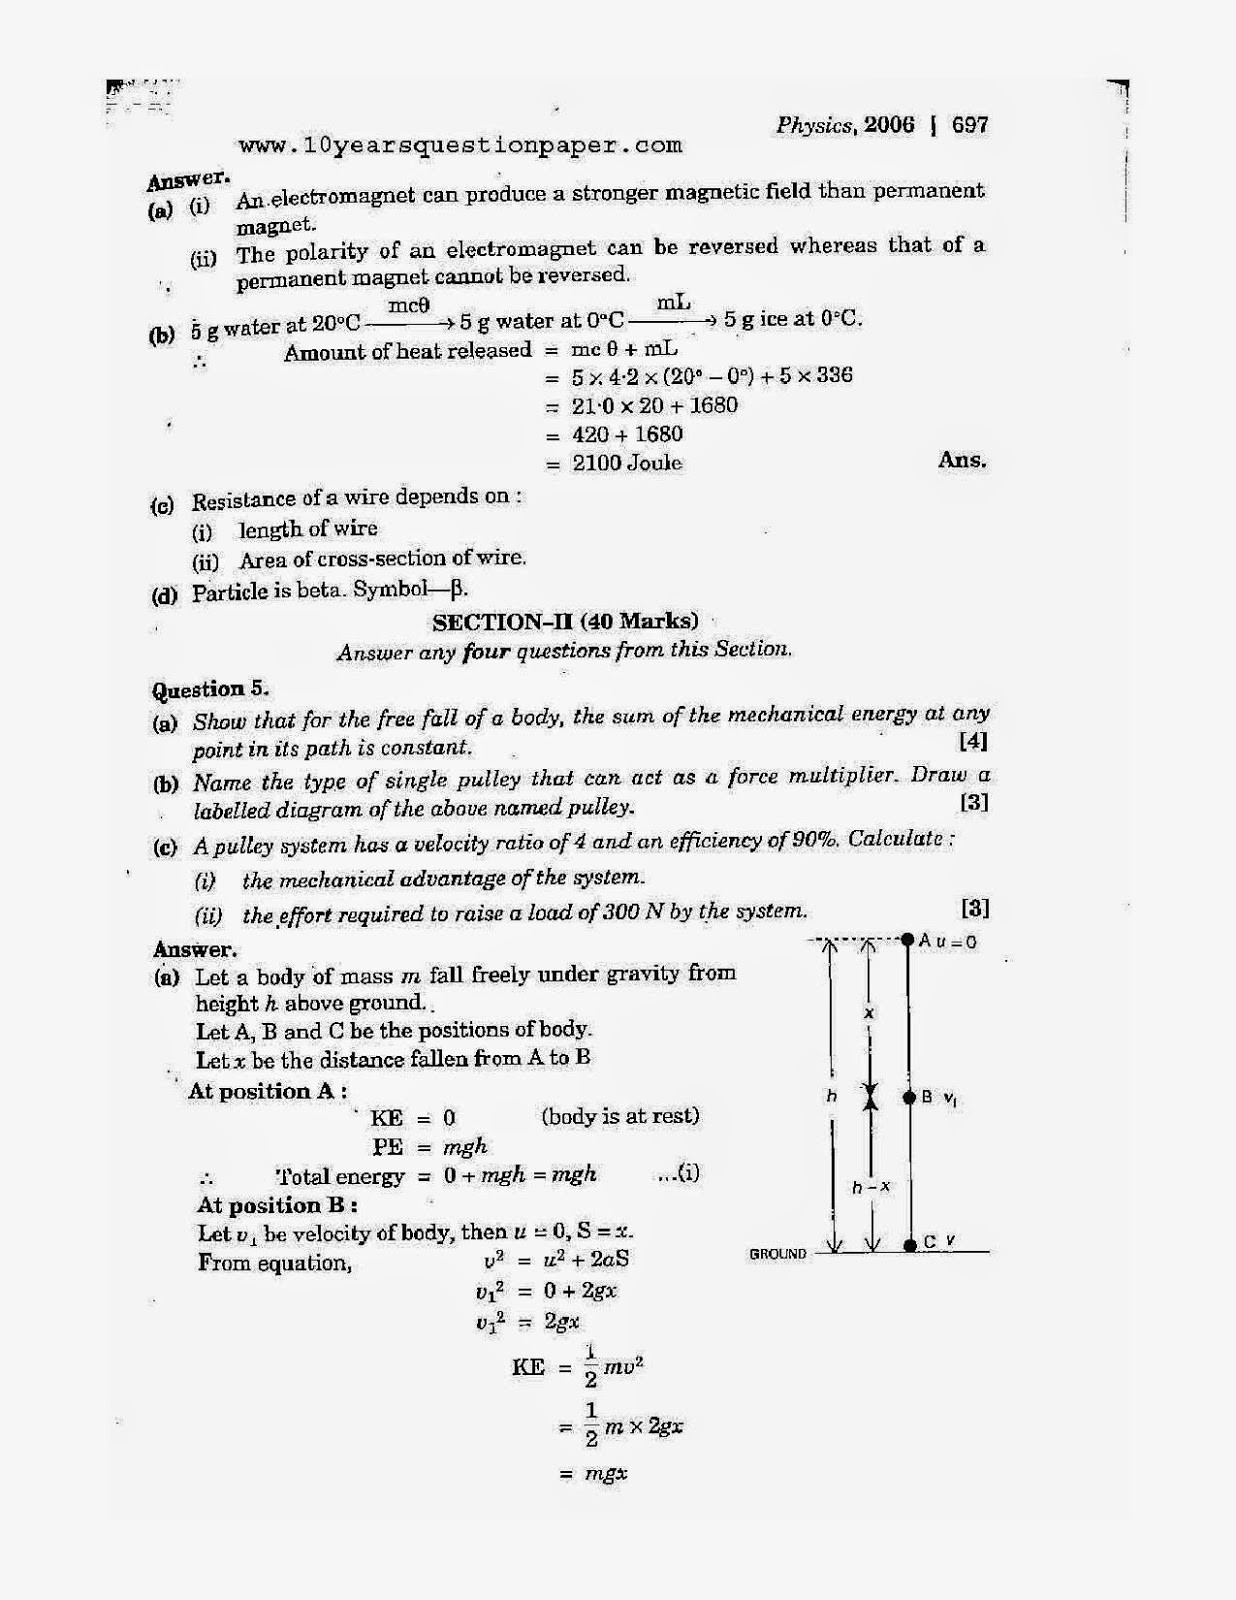 icse 2006 class 10th science physics paper 1 question paper